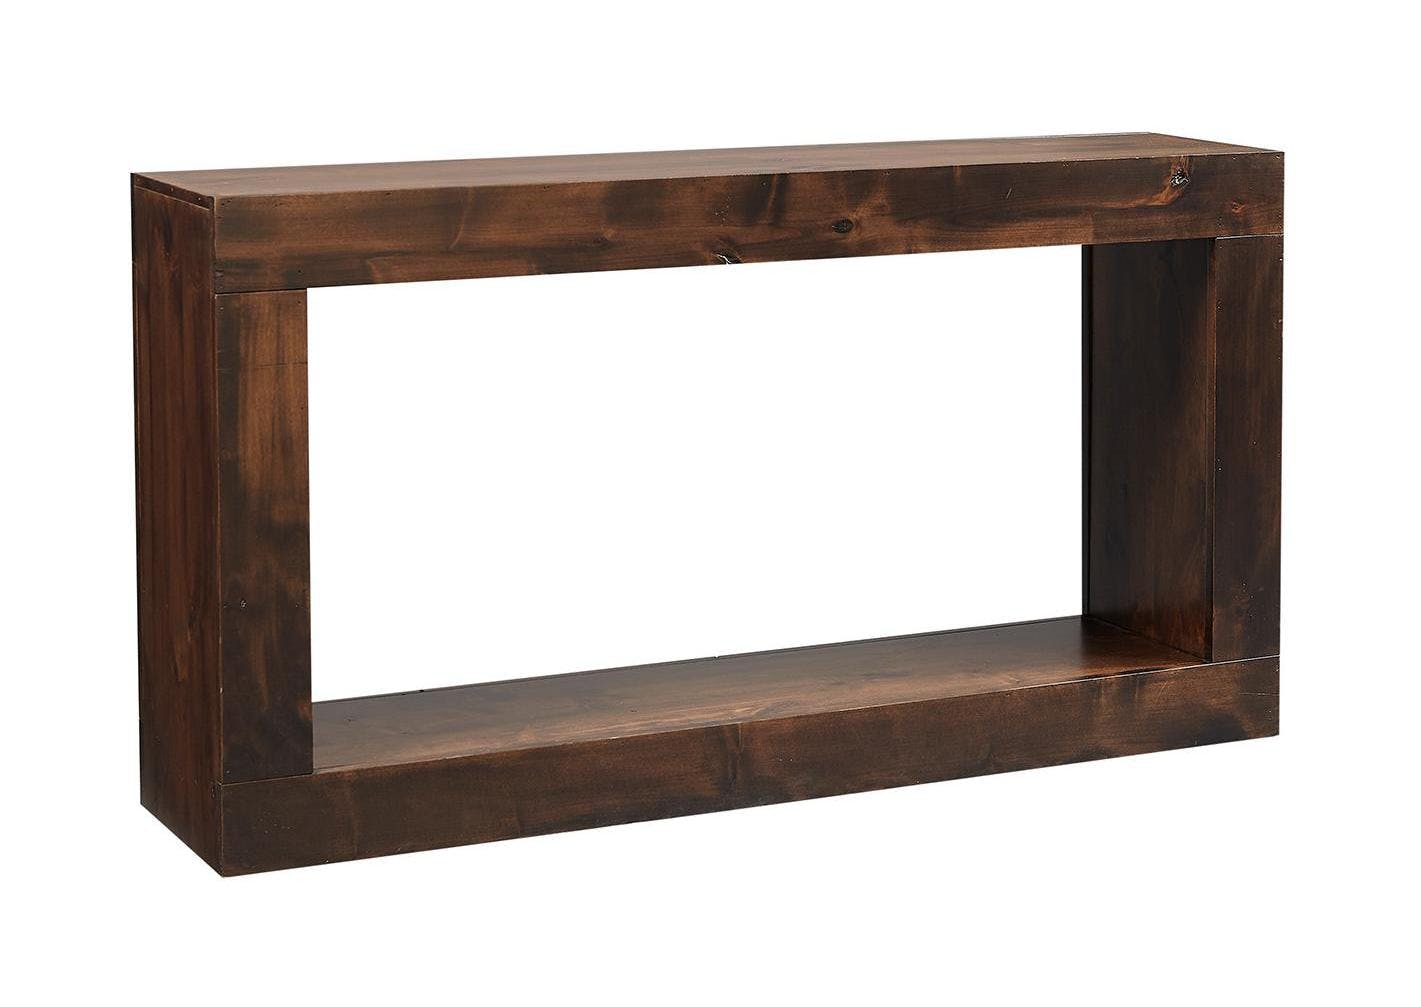 Picture of: Aspenhome Living Room 60 Console Table Du960 Tob Carol House Furniture Maryland Heights